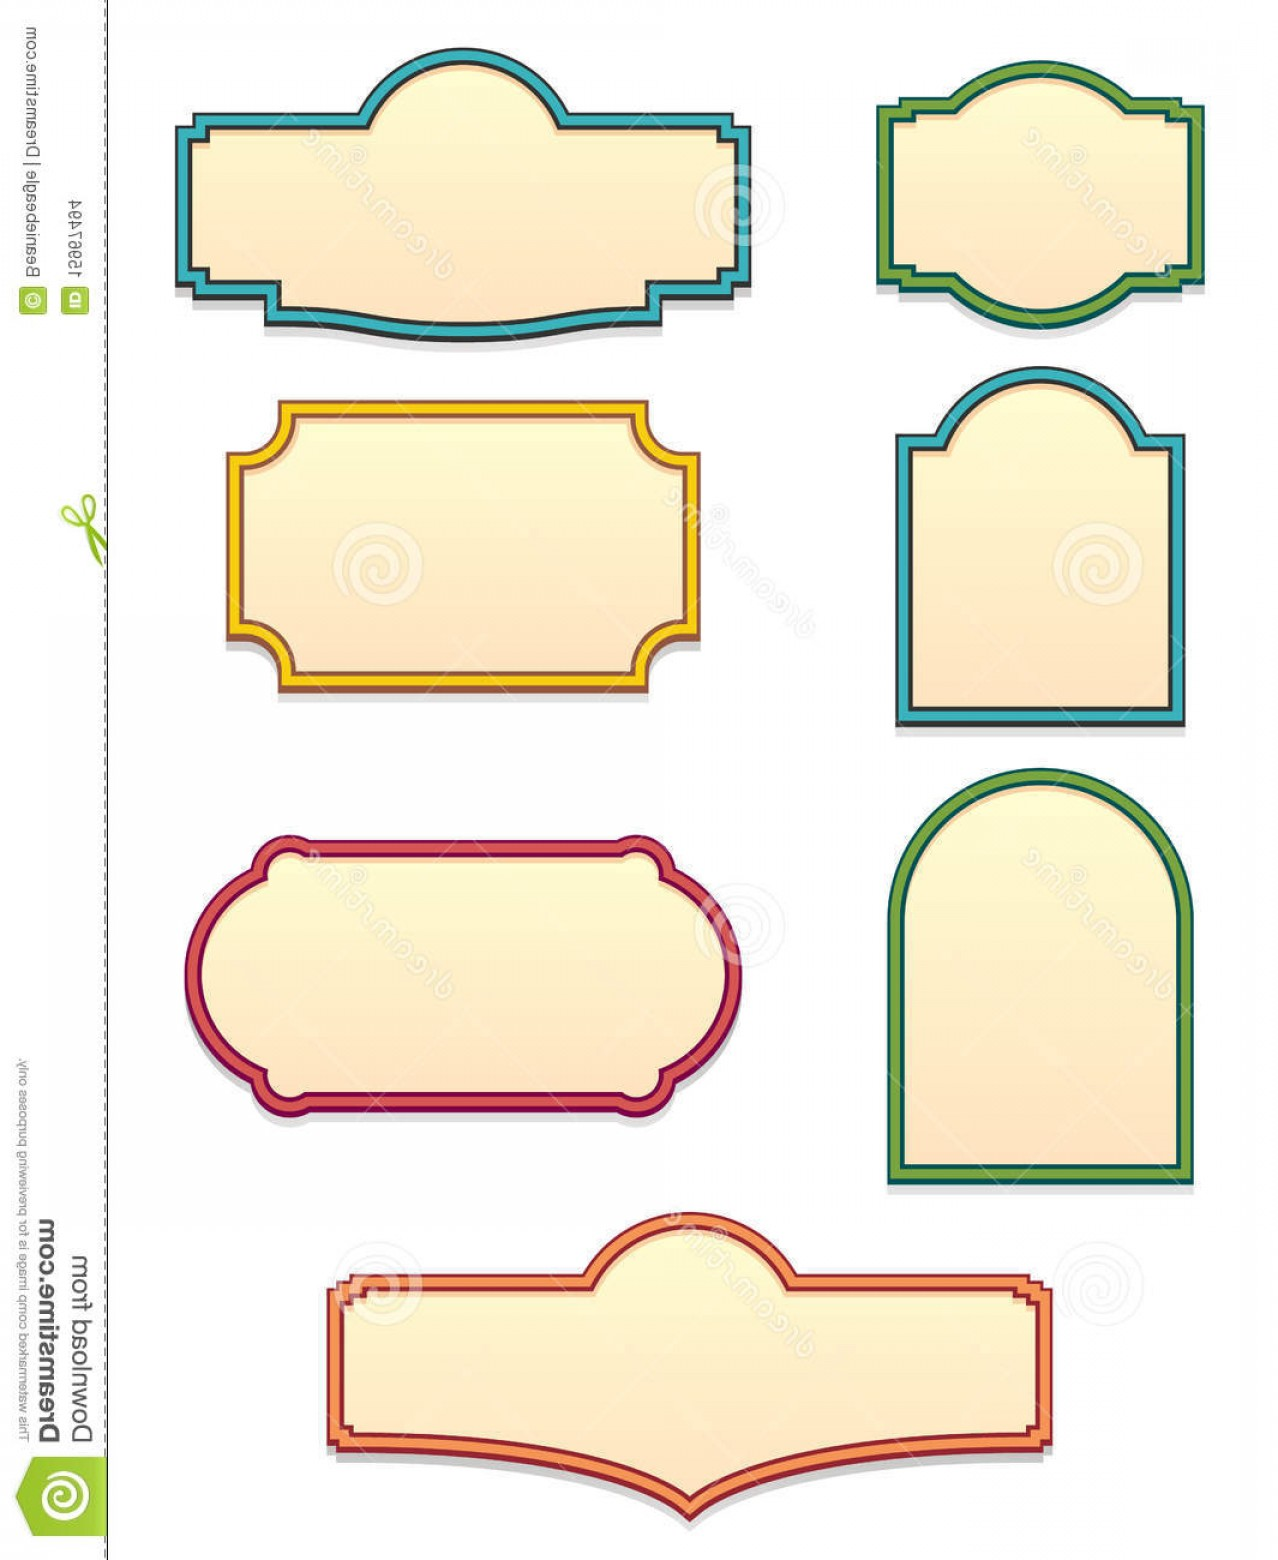 Vintage Sign Vector Clip Art: Stock Images Antique Sign Templates Eps Image